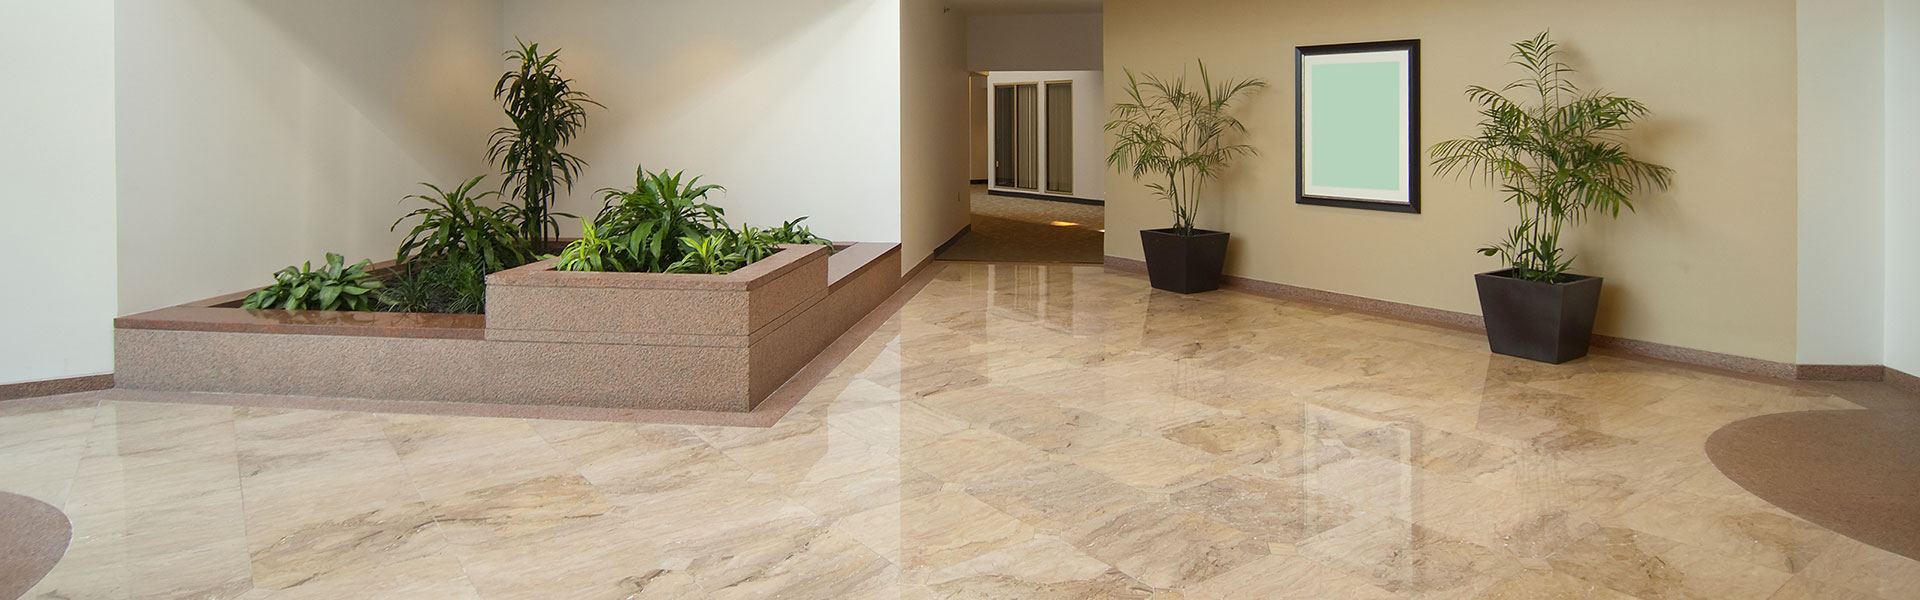 Tile West Inc. | Tile Installation For Marin and Sonoma County